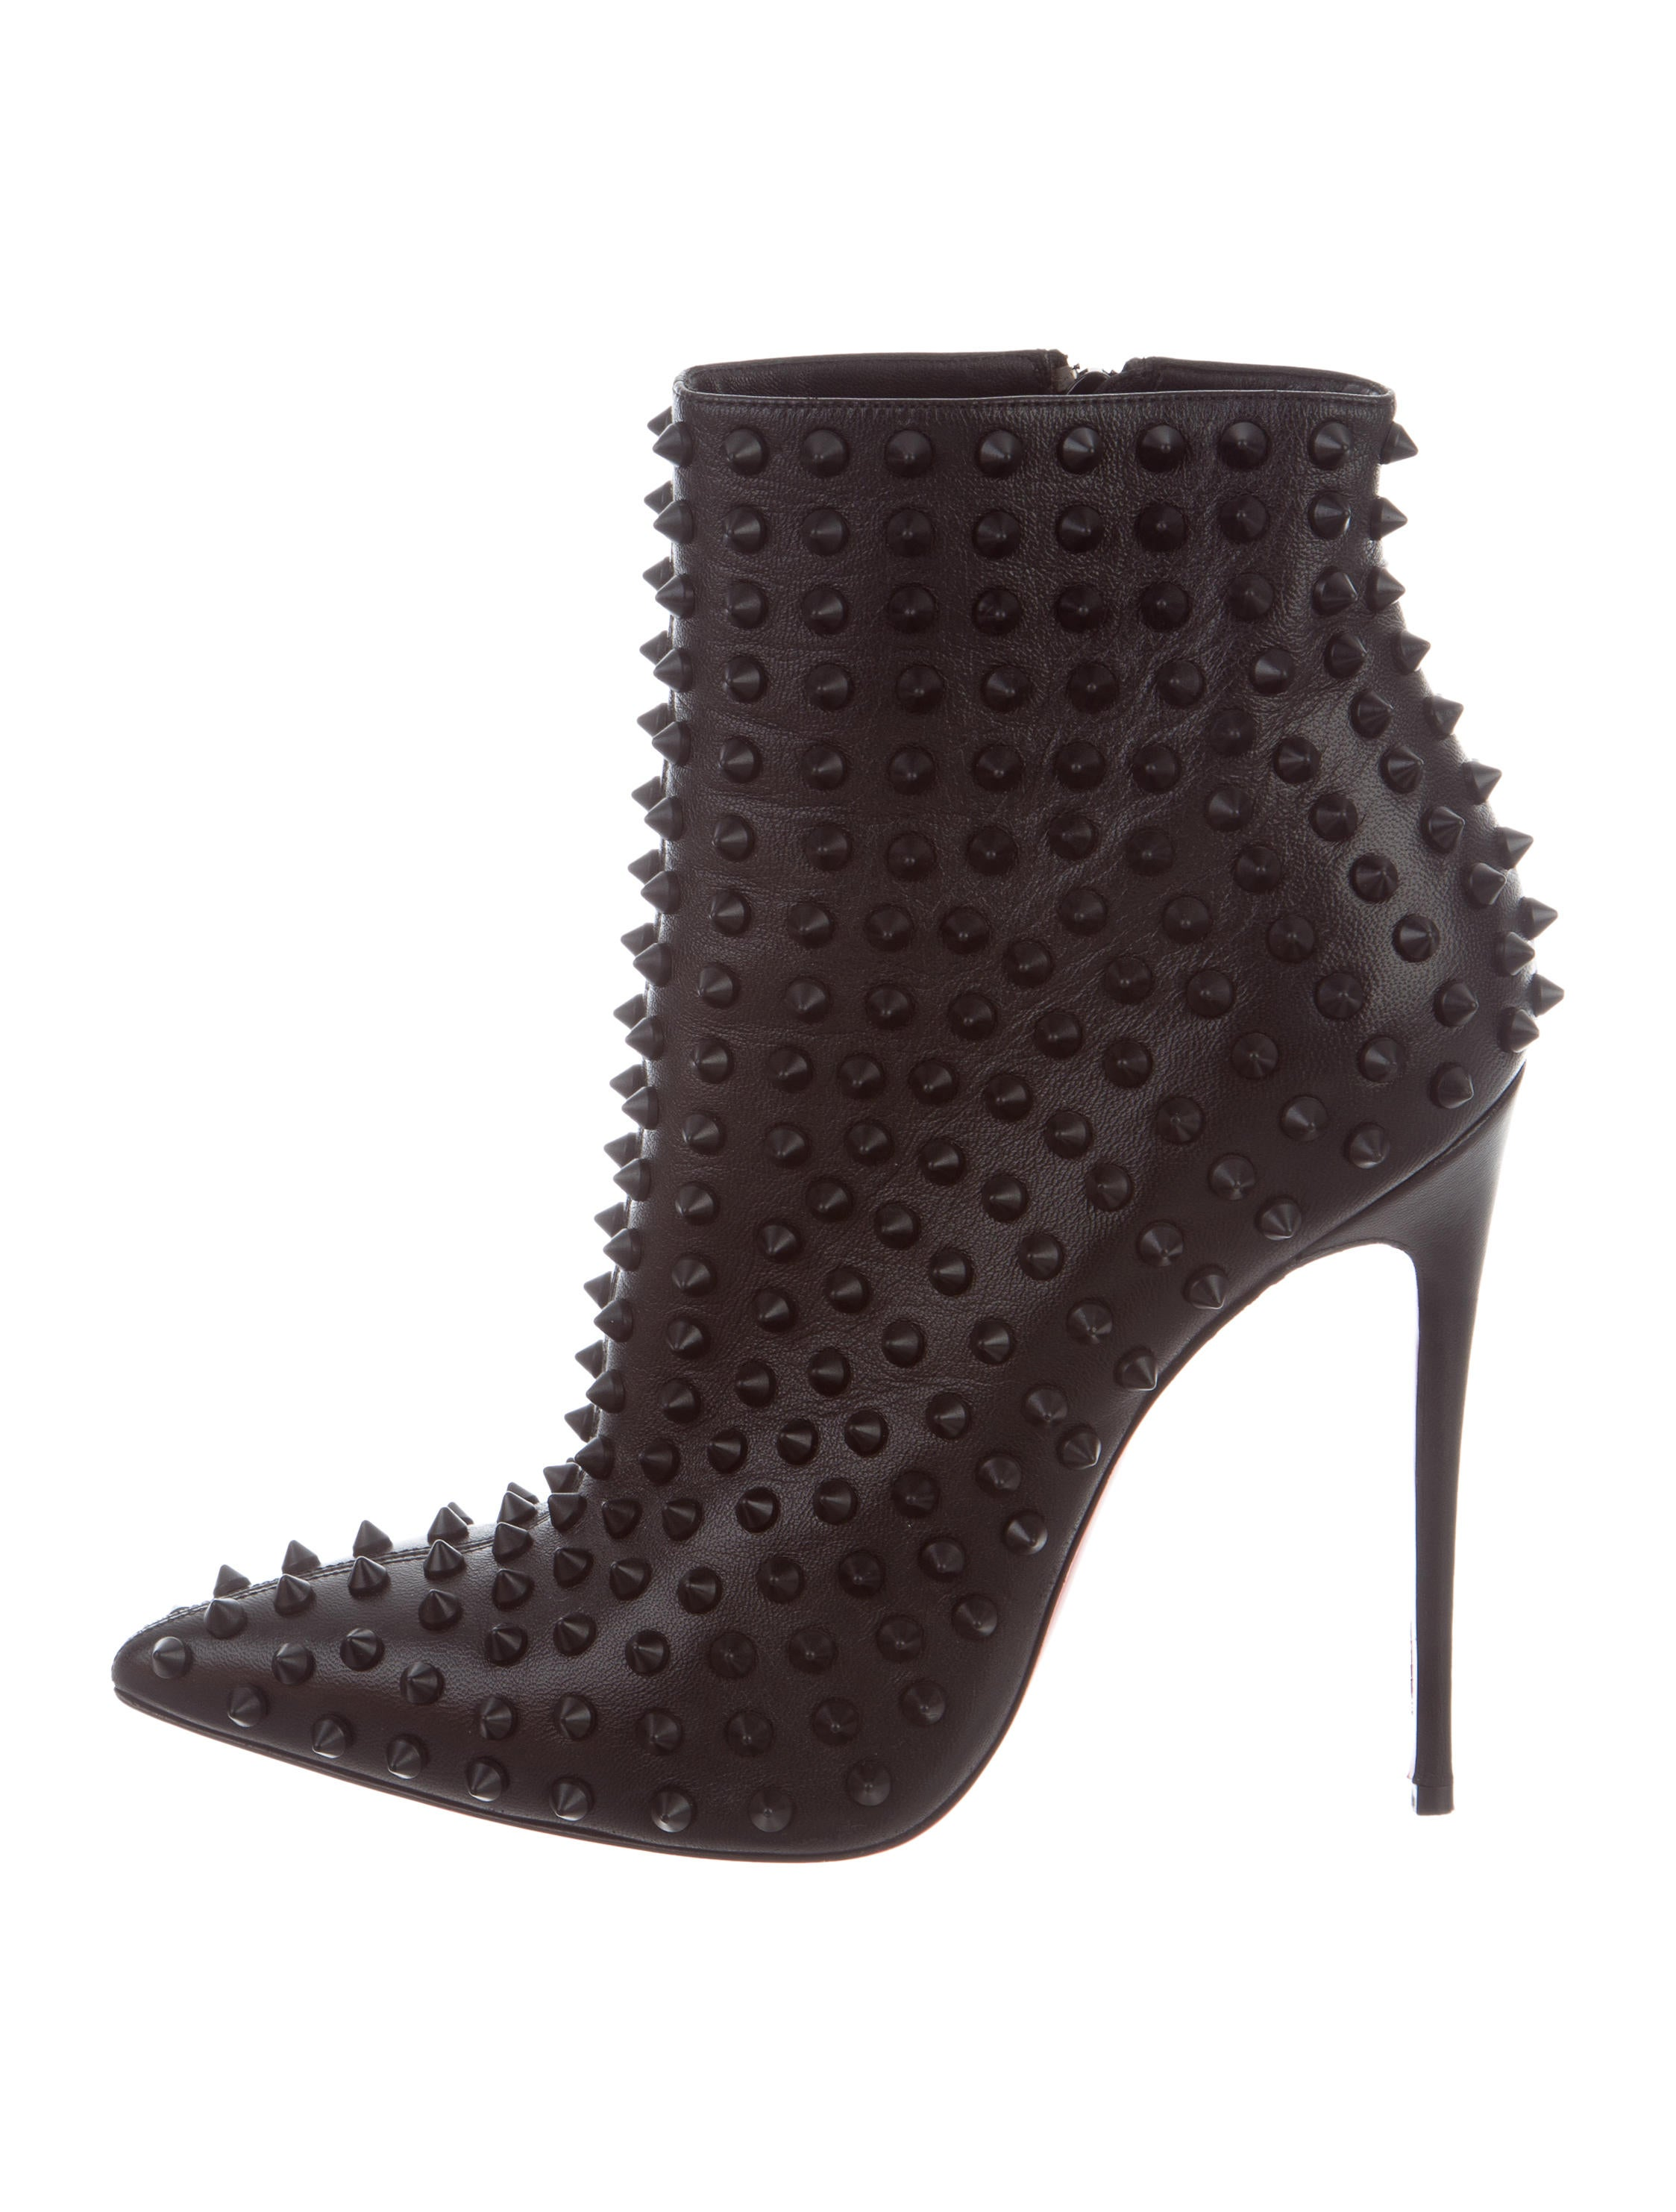 ost release dates Christian Louboutin 2017 Snakilta Booties sneakernews cheap price explore cheap sale 2014 newest low price fee shipping GLjjsejIP2